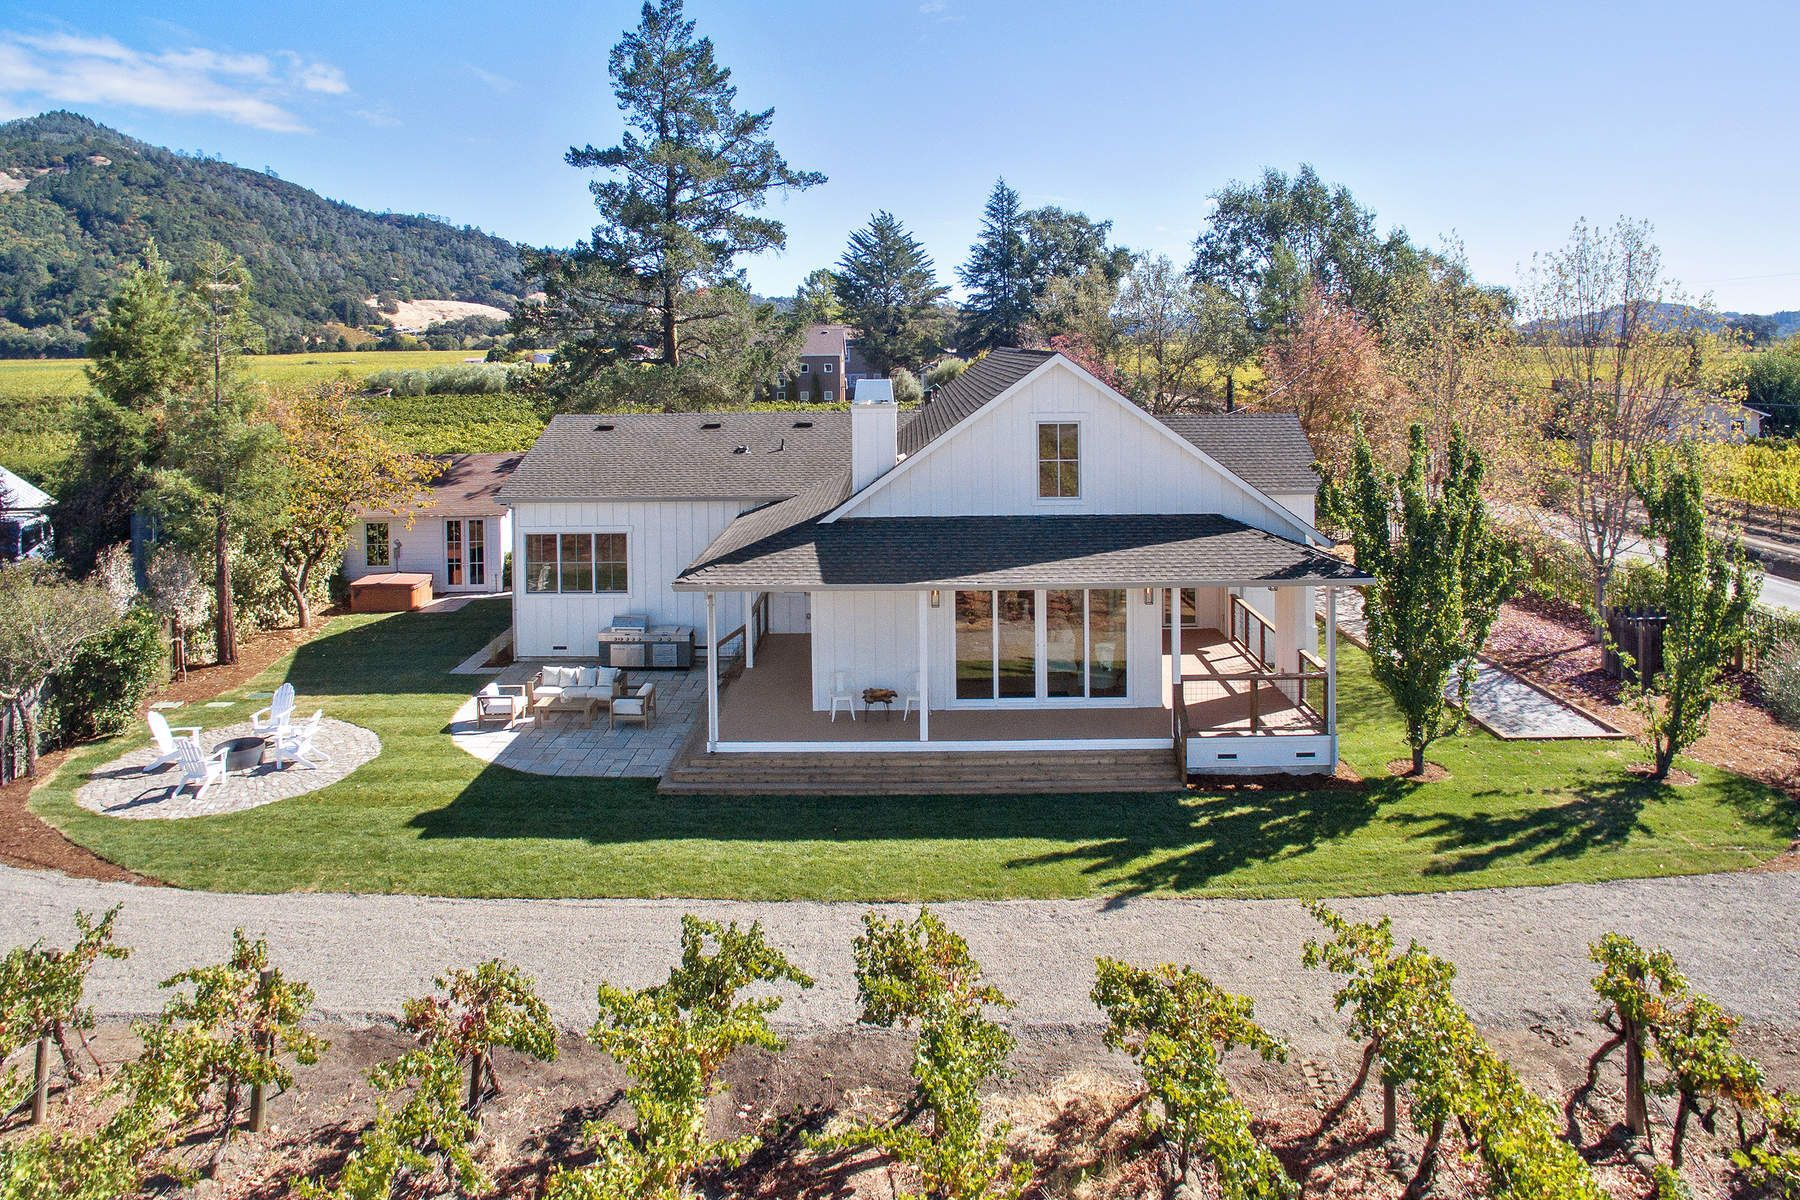 Single Family Home for Sale at 6476 Red Winery Road 6476 Red Winery Rd Geyserville, California 95441 United States